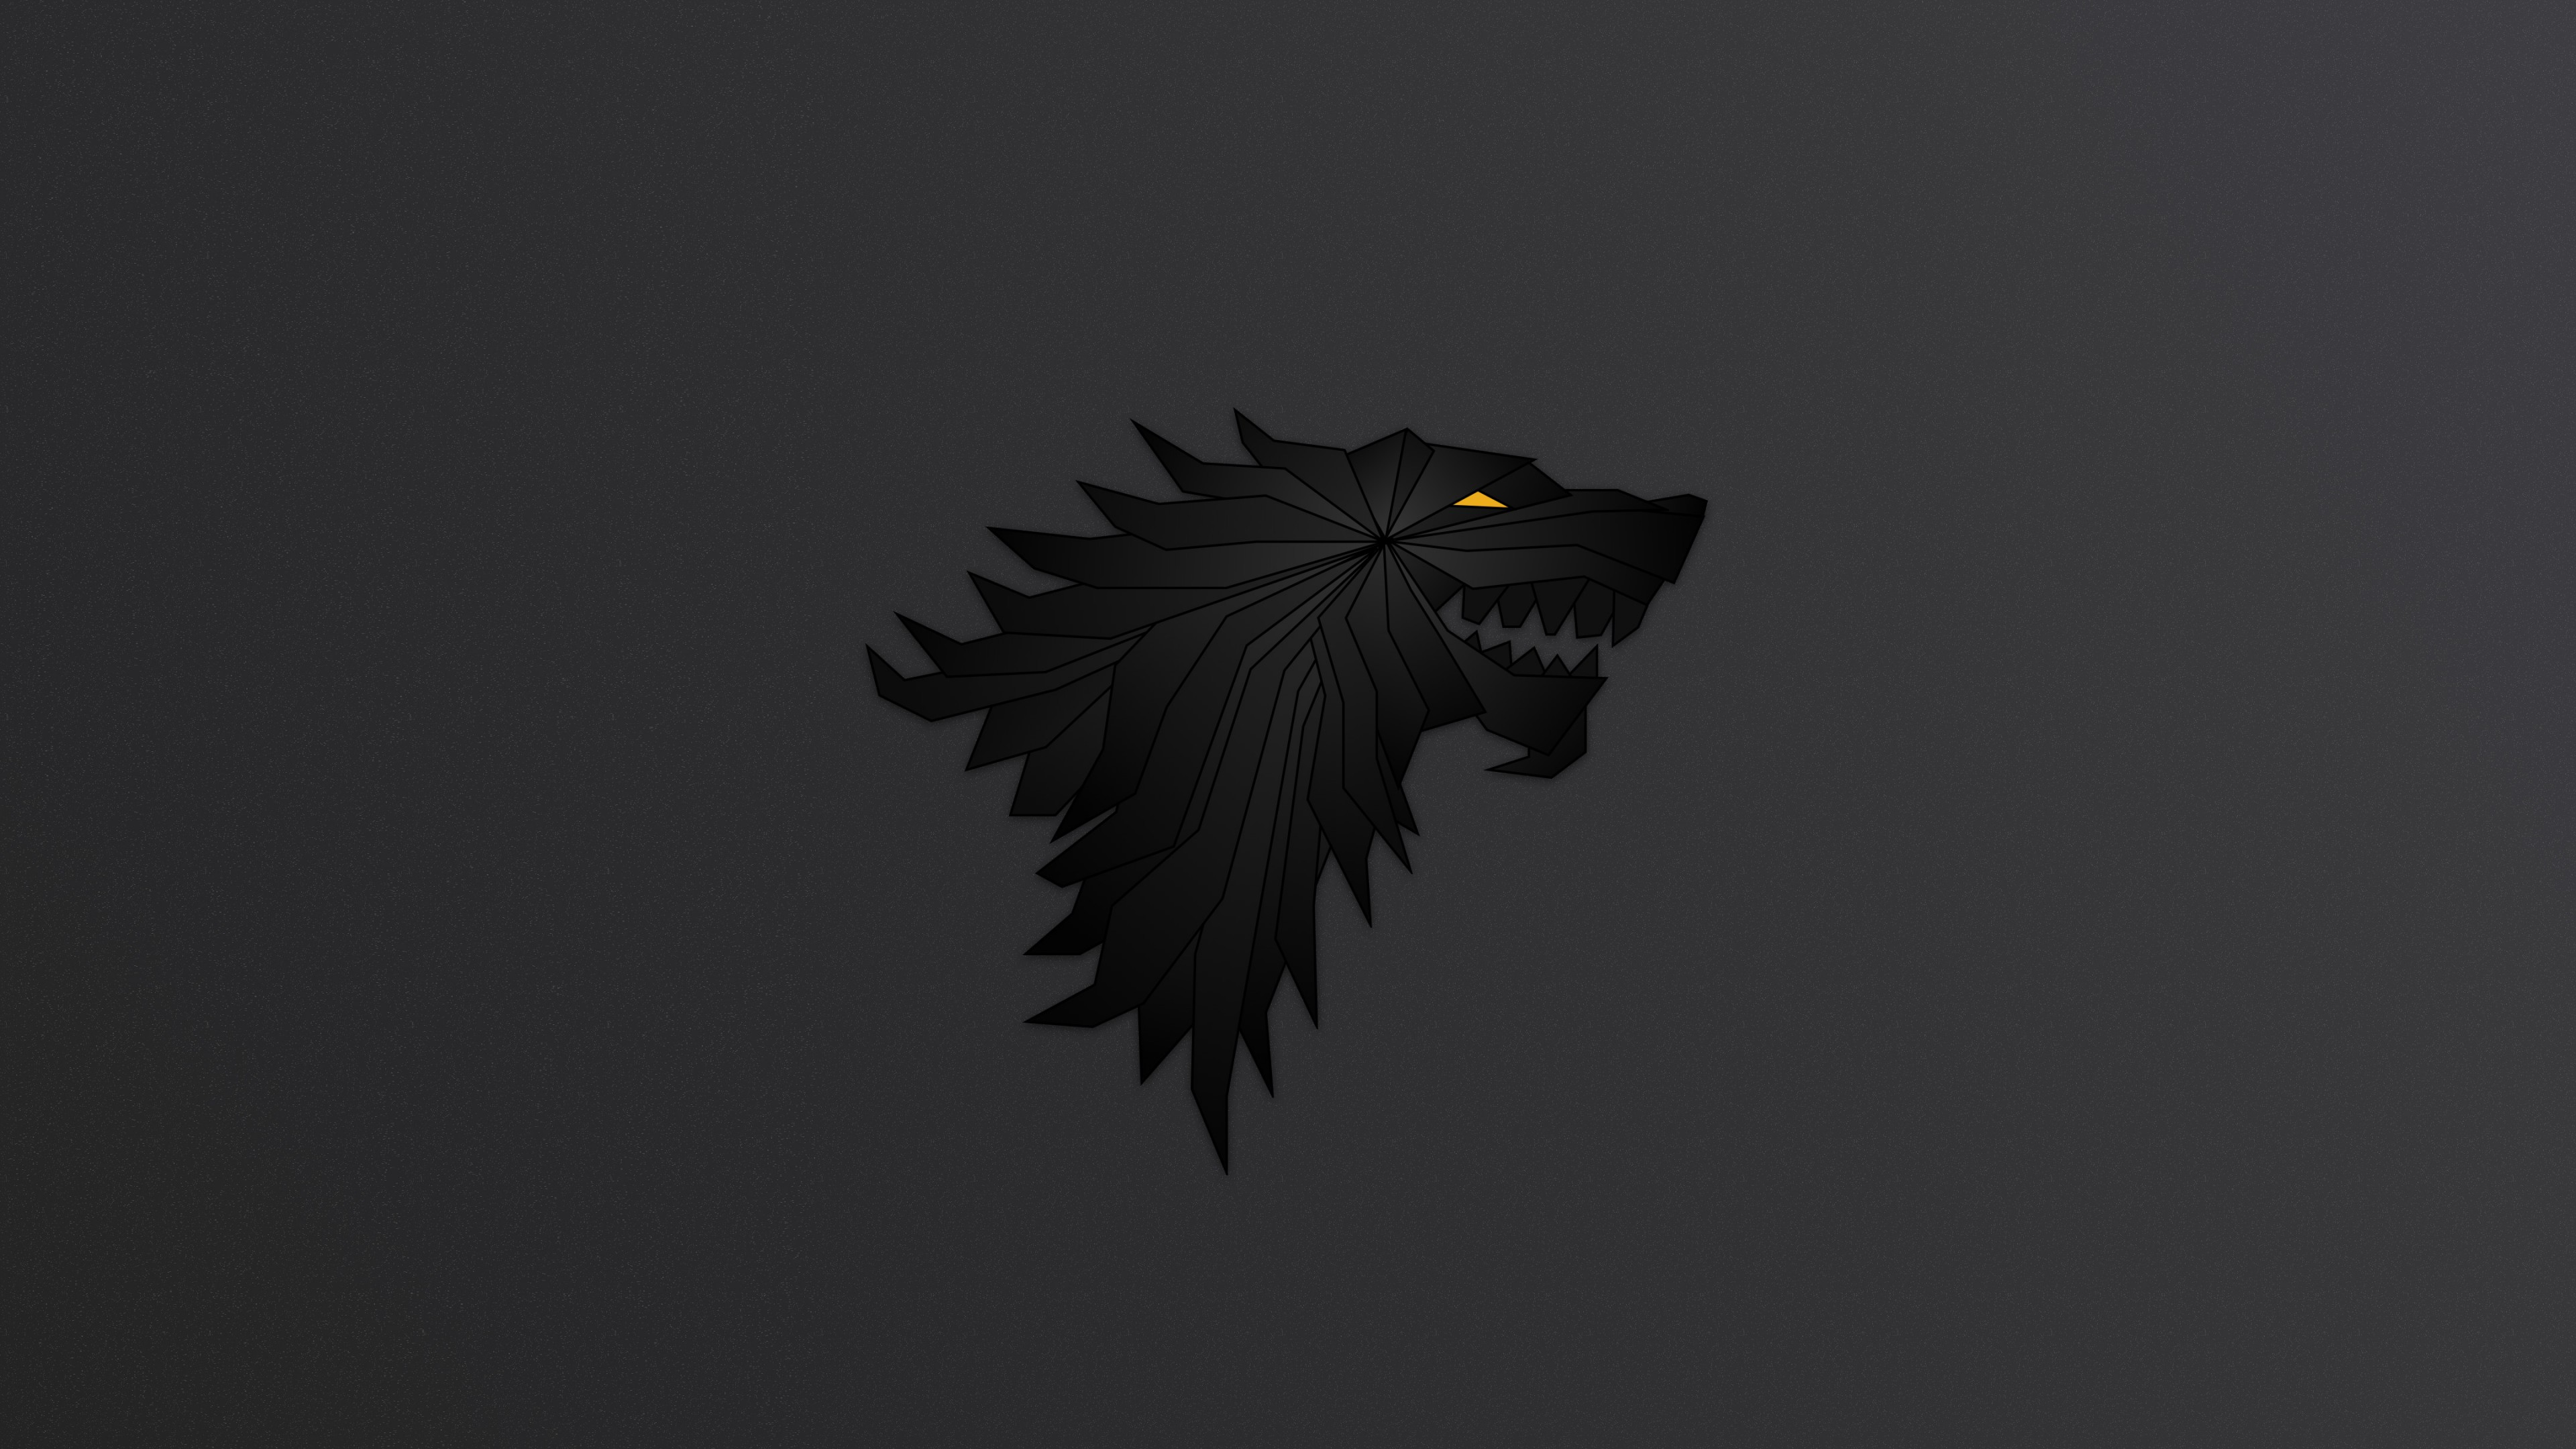 Game Of Thrones Minimalist Wallpaper: House Stark Game Of Thrones Minimalism, HD Tv Shows, 4k